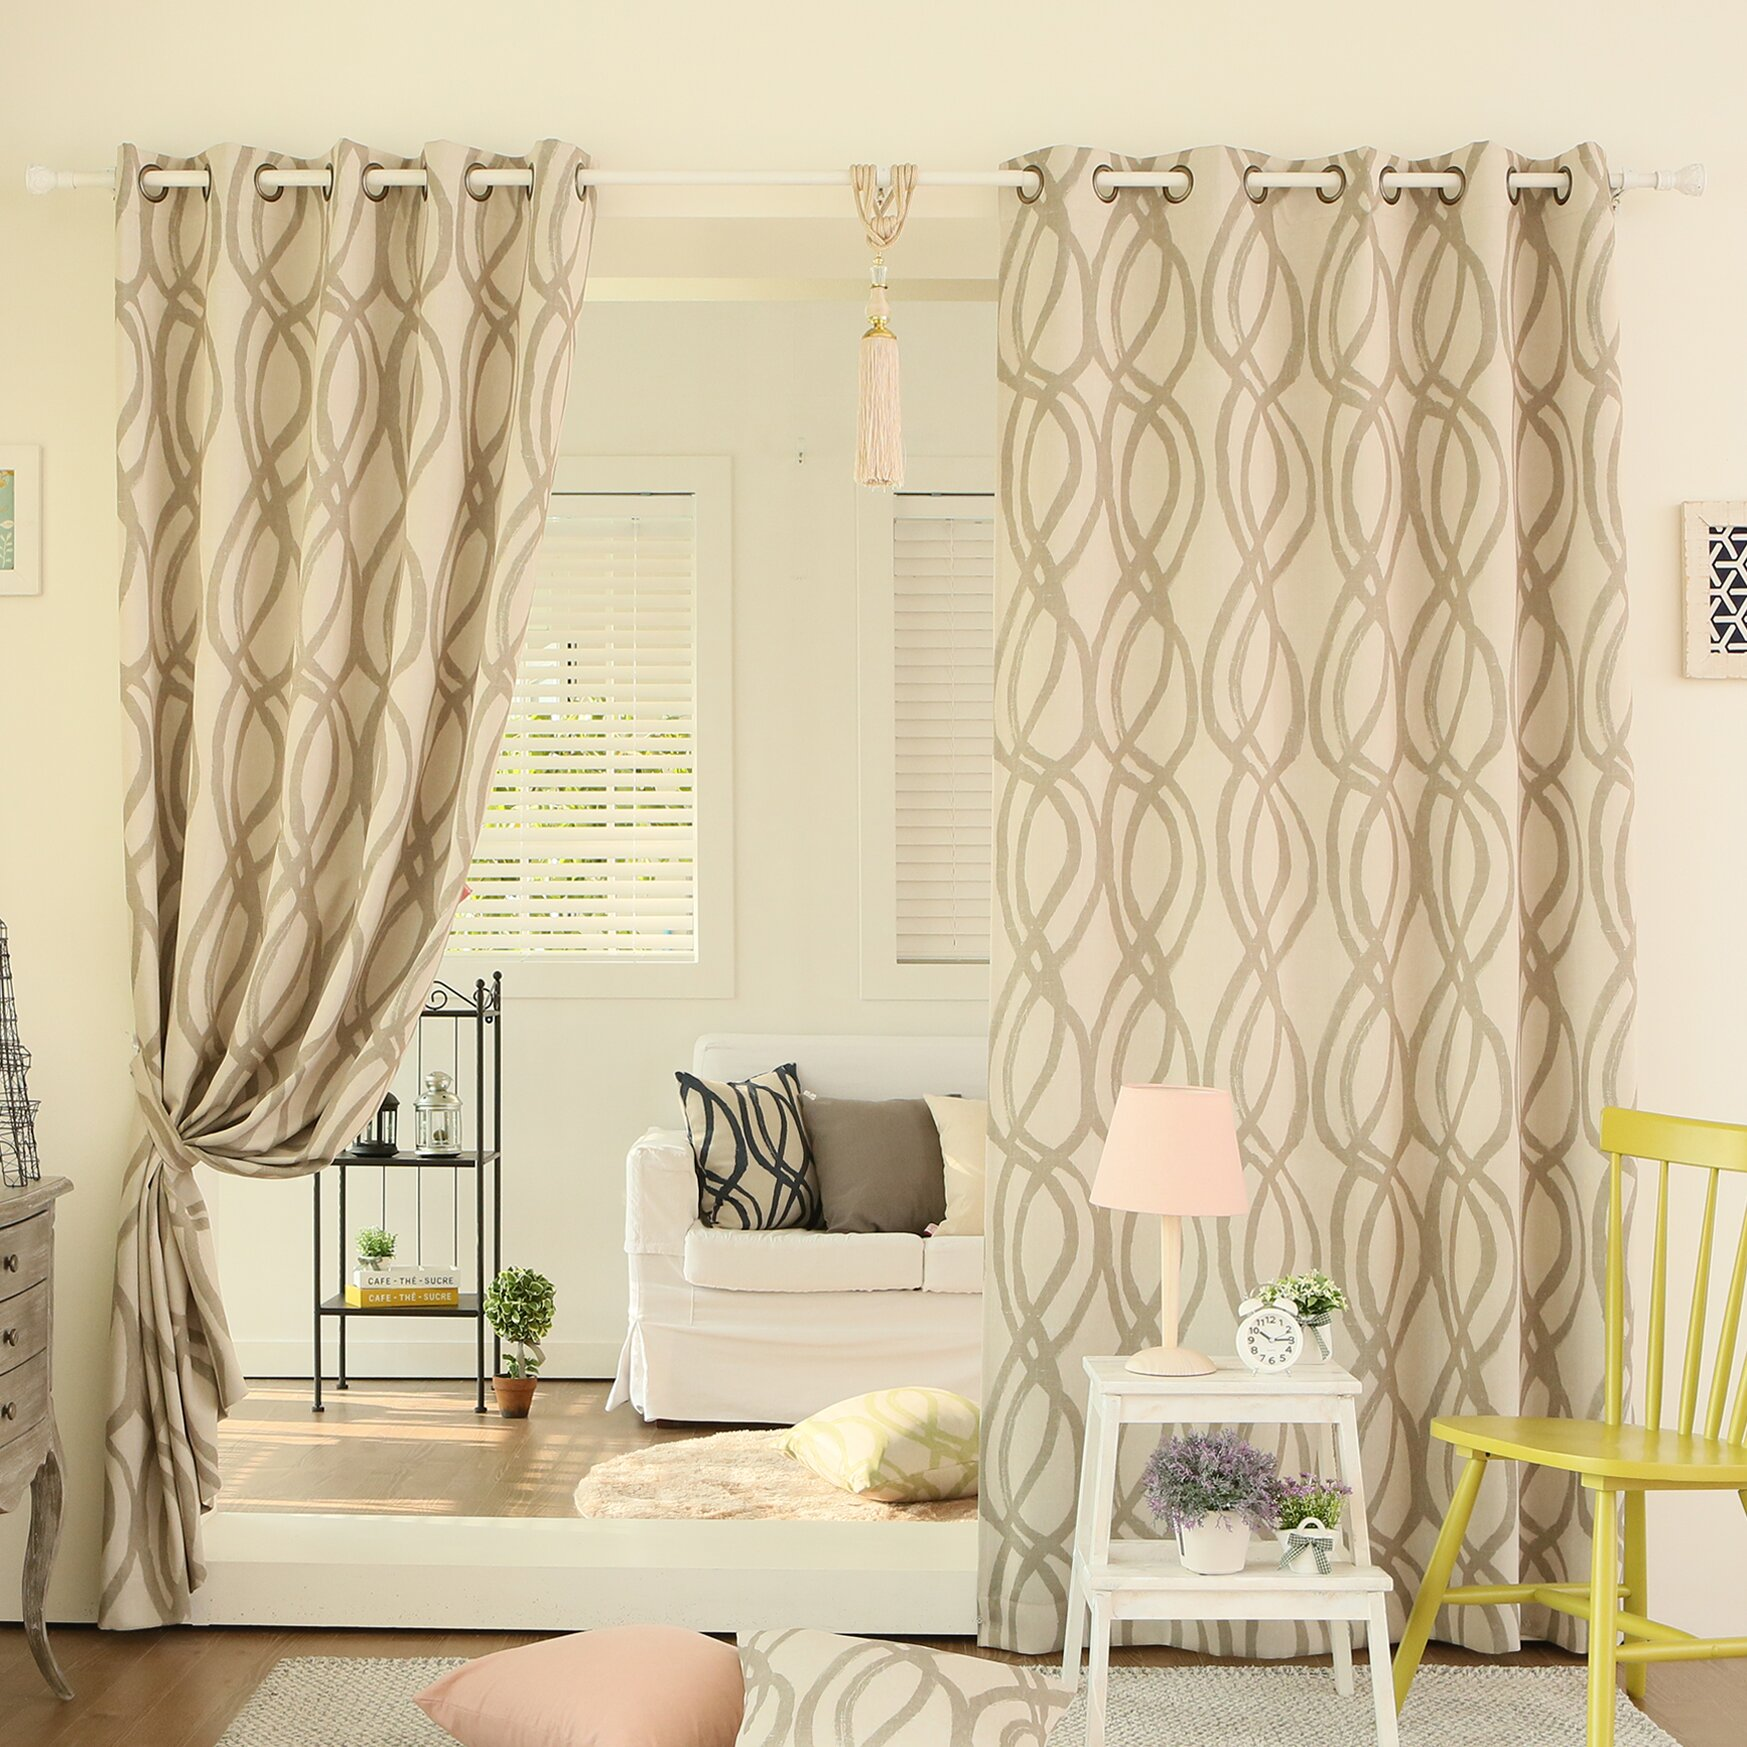 Of Curtains For Living Room Best Home Fashion Inc Wave Room Grommet Top Room Darkening